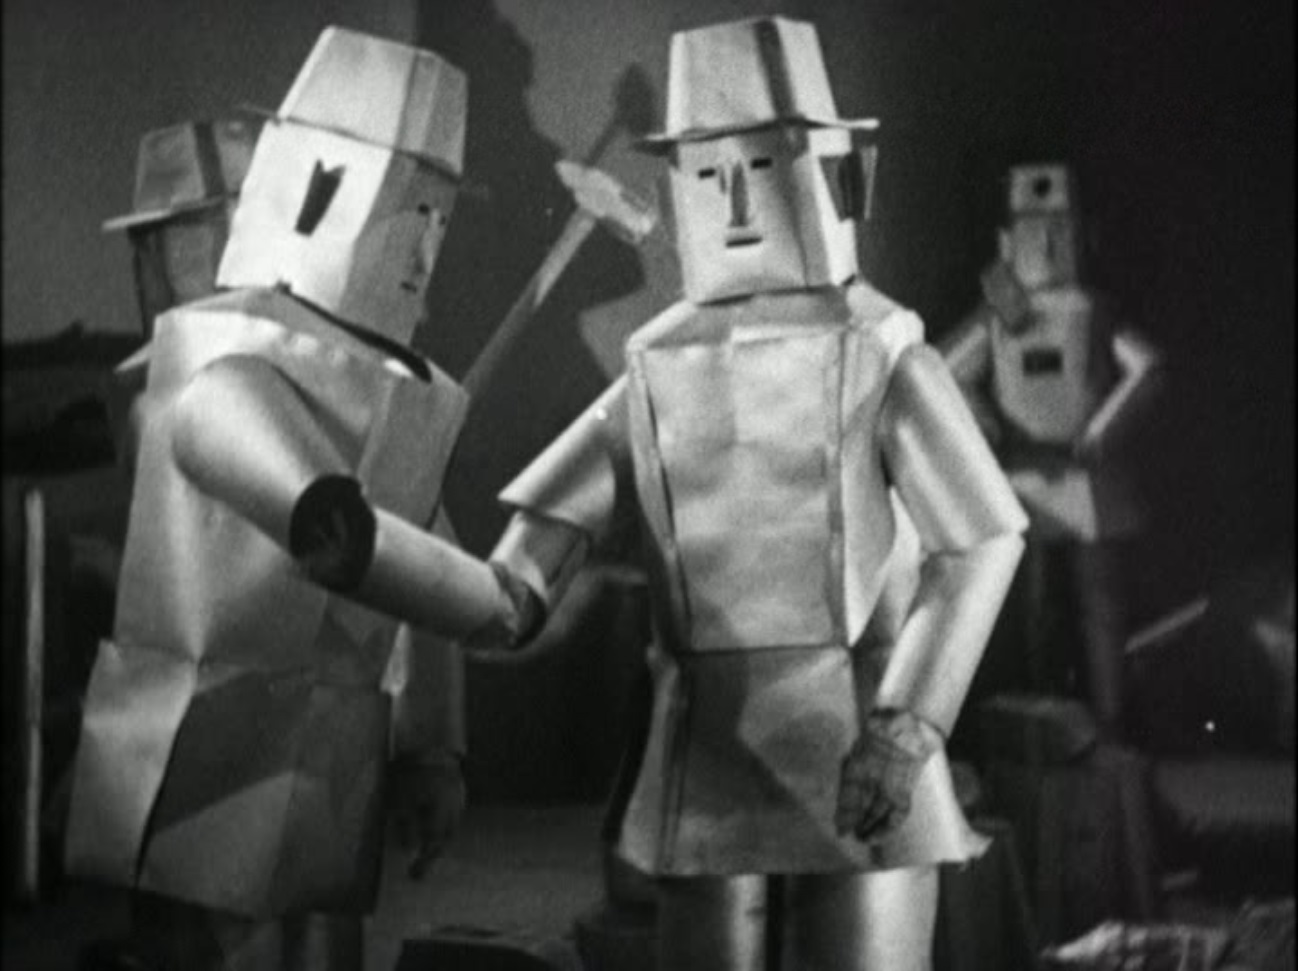 Robots in cowboy hats from The Phantom Empire (1935)